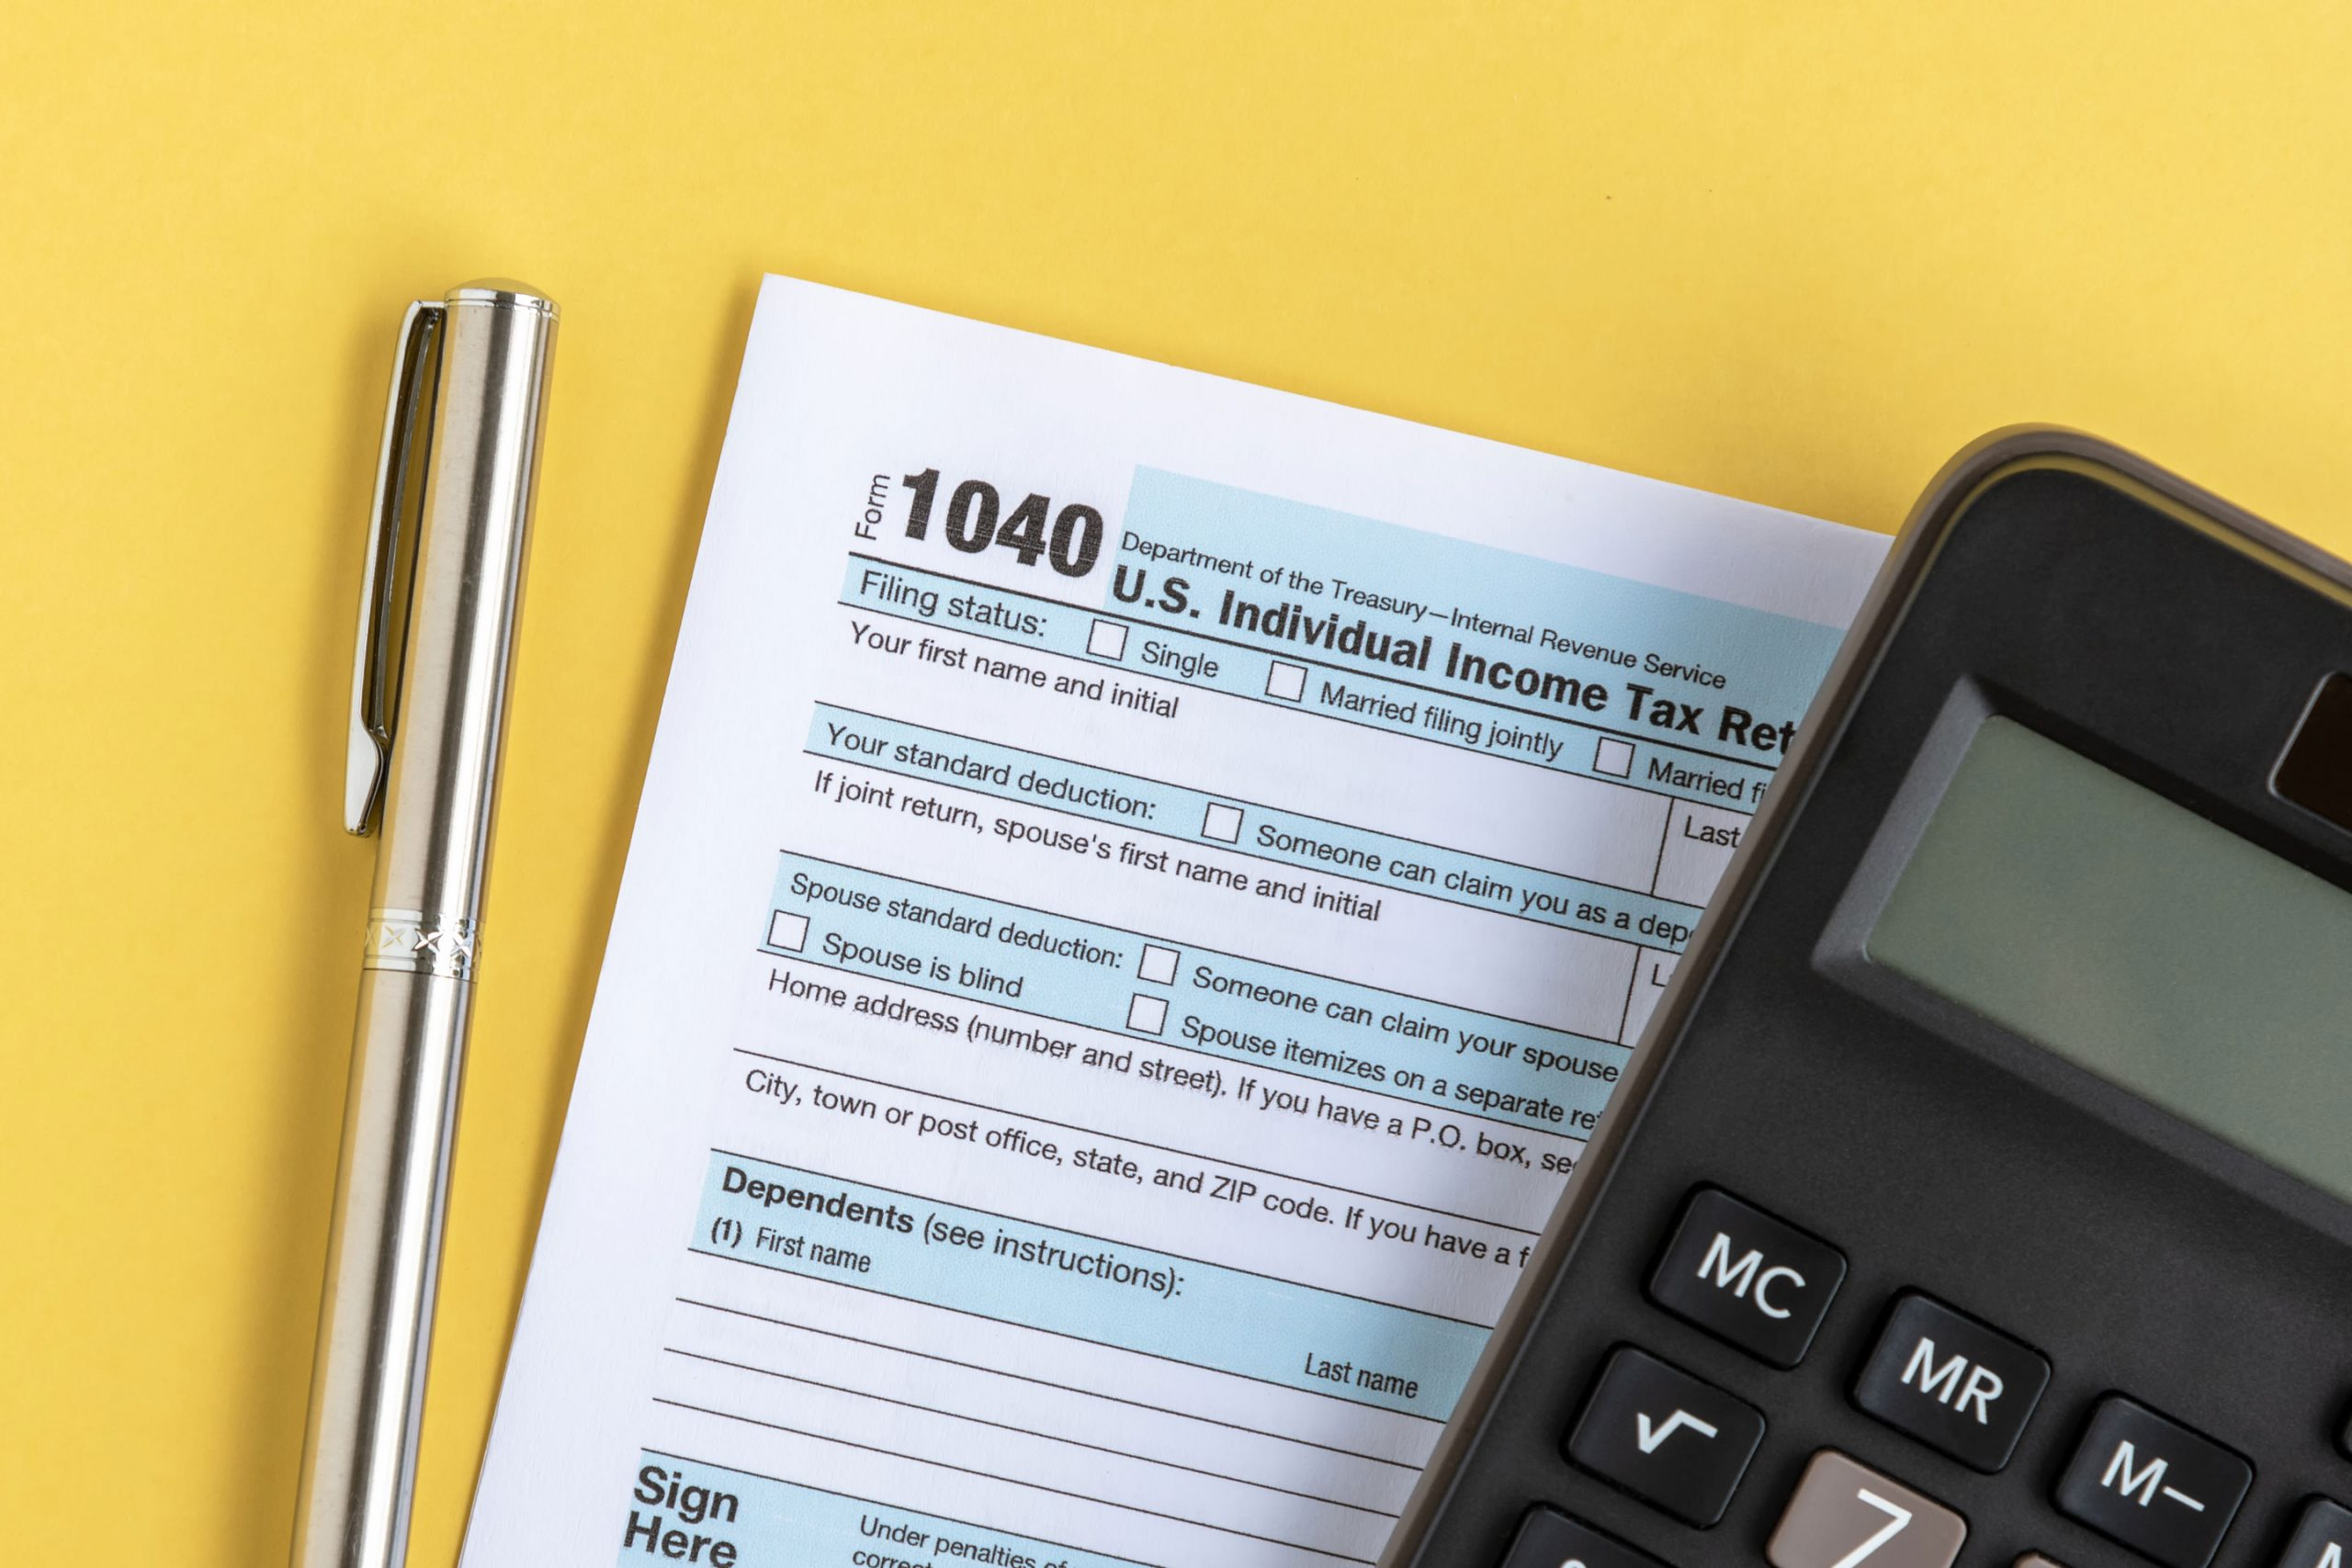 US Individual Income Tax Return Forms 1040